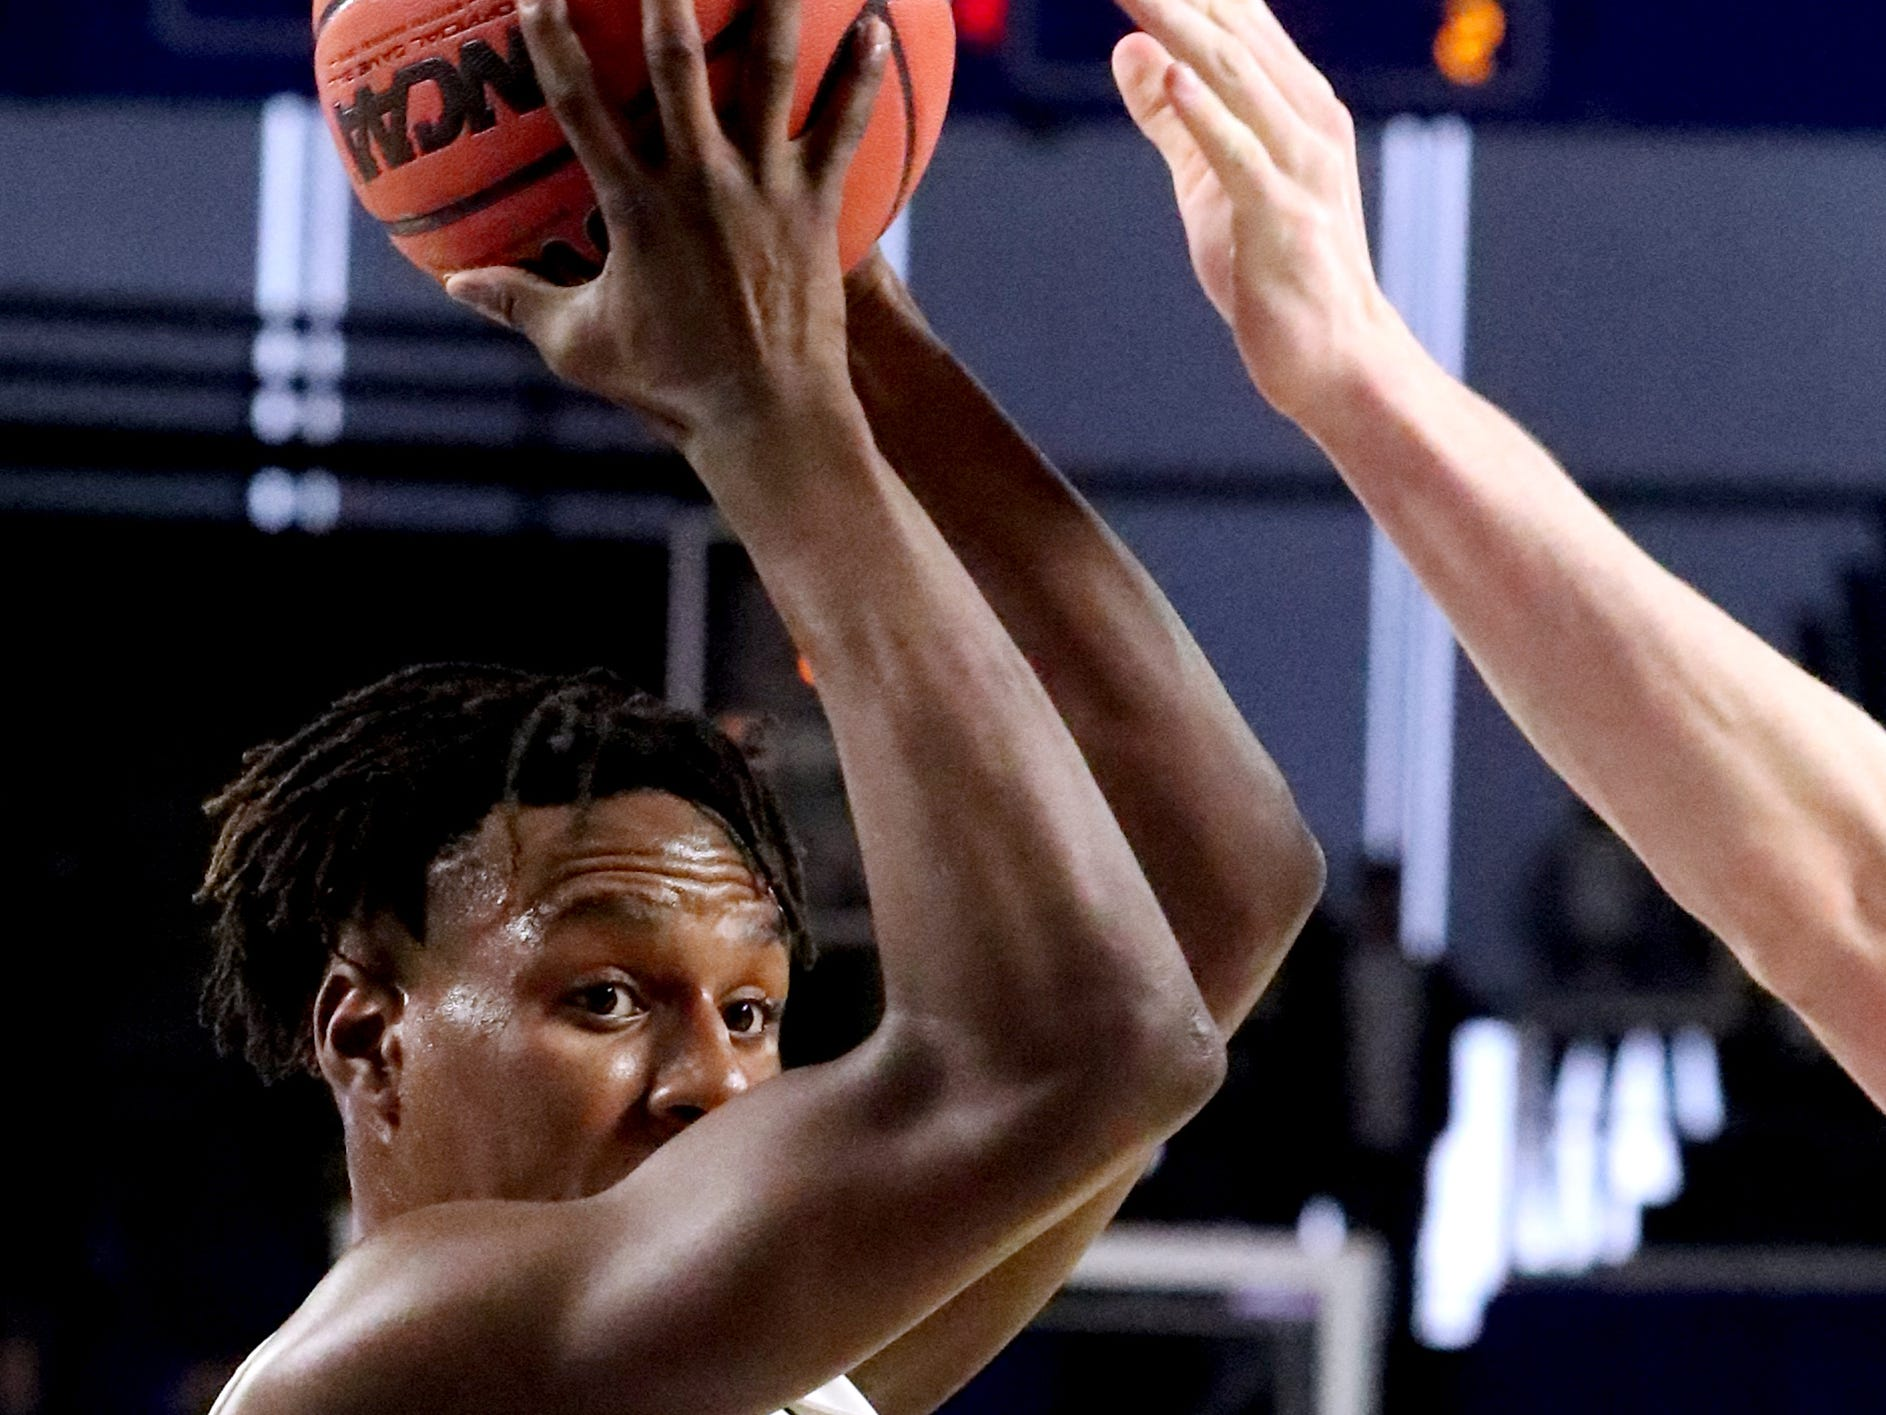 Oakland's Mandrell Grant (4) looks for a player to pass to during the quarterfinal round of the TSSAA Class AAA Boys State Tournament against Brentwood, on Thursday, March 14, 2019, at Murphy Center in Murfreesboro, Tenn.